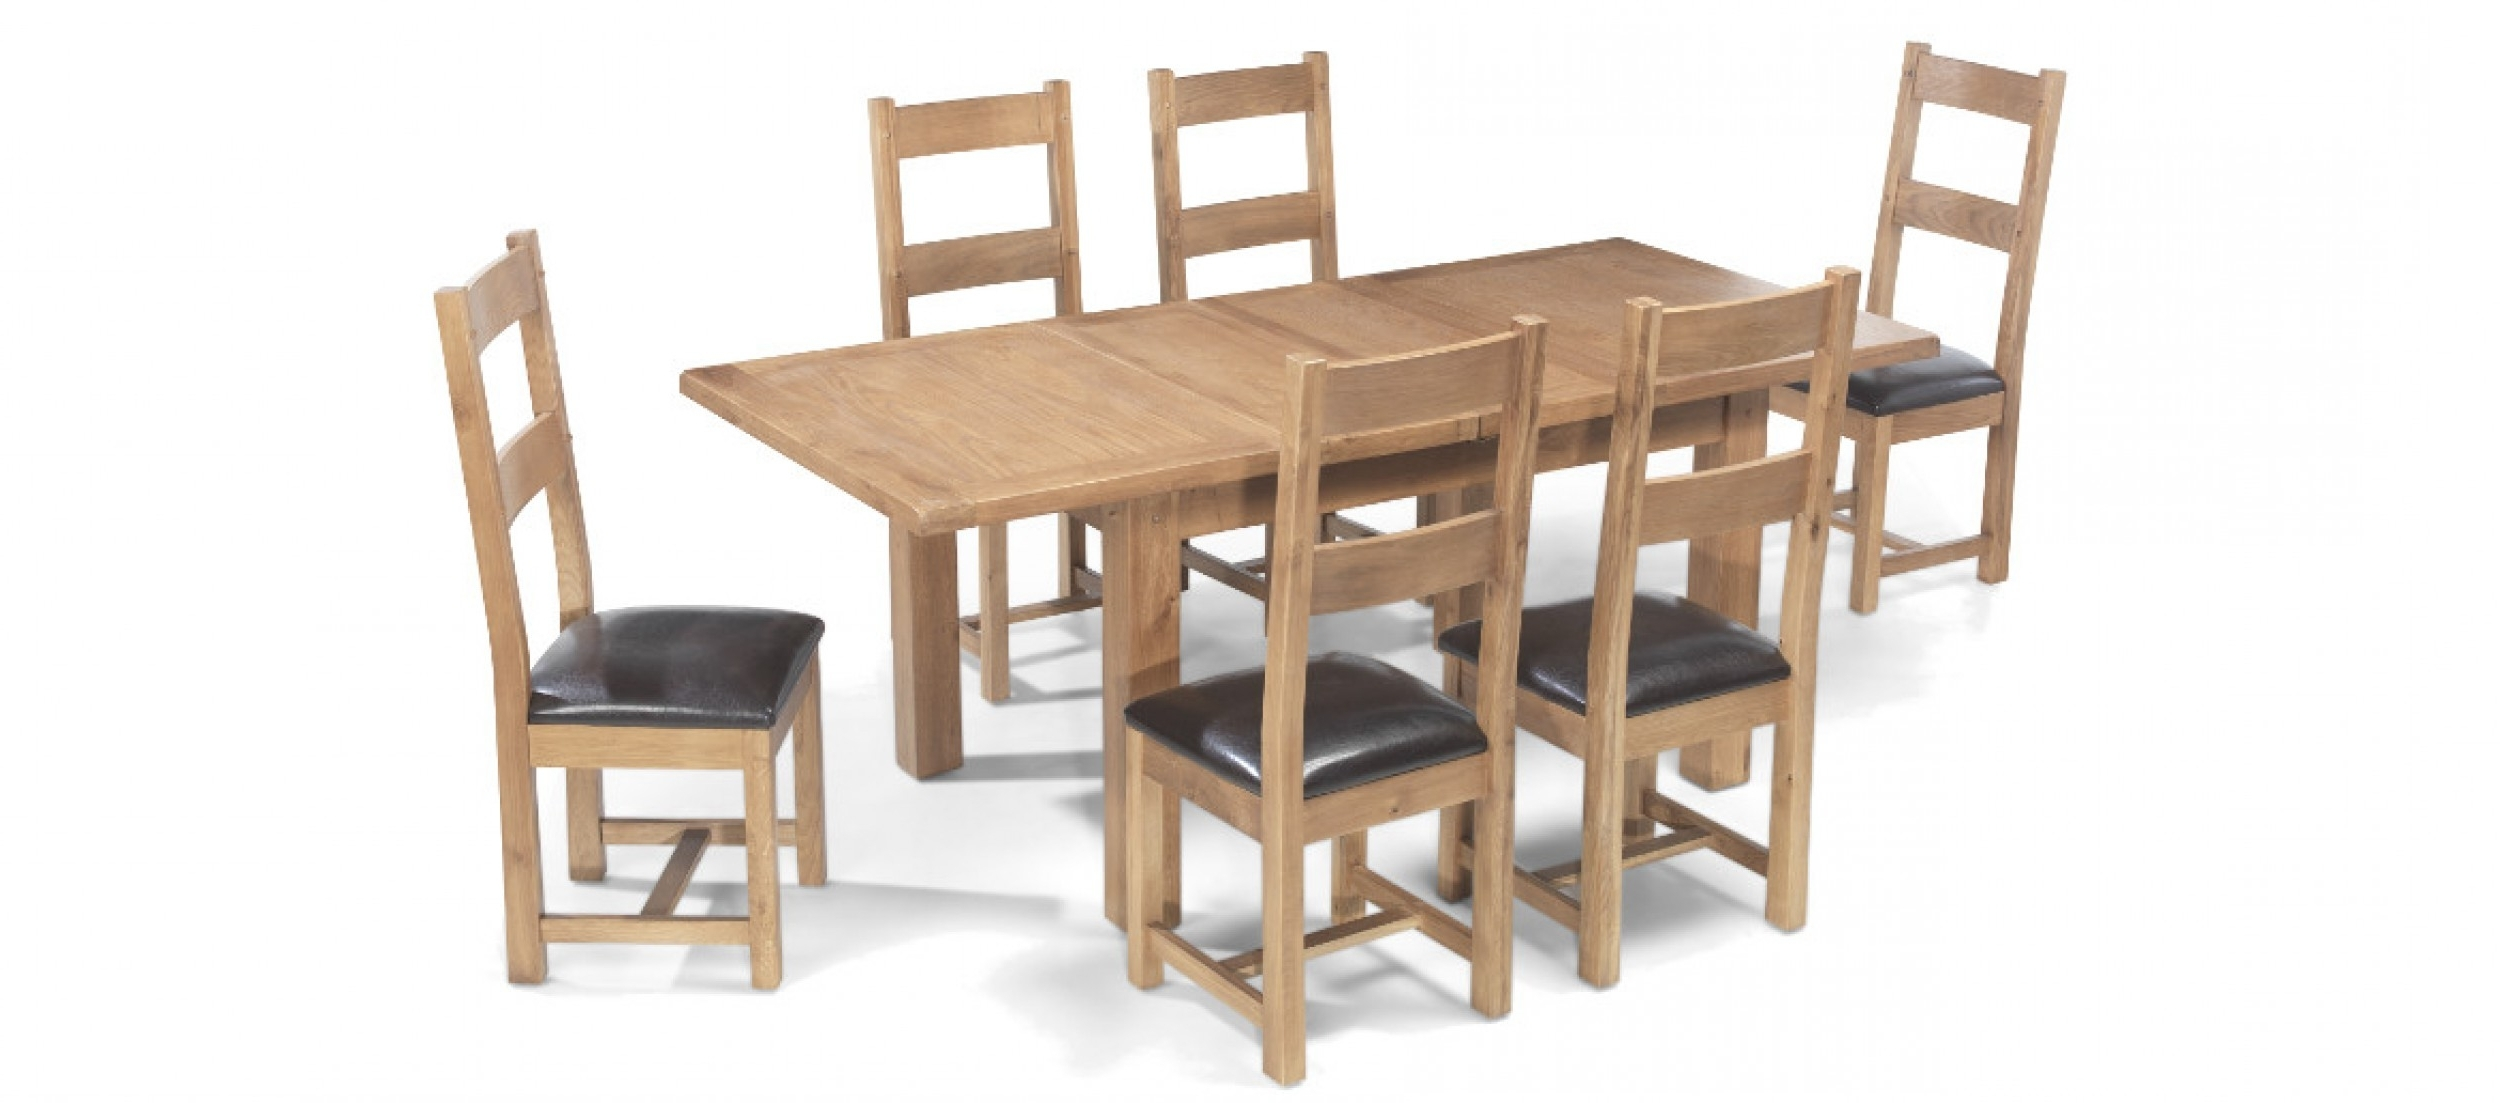 Quercus Pertaining To Most Up To Date Chunky Solid Oak Dining Tables And 6 Chairs (View 23 of 25)